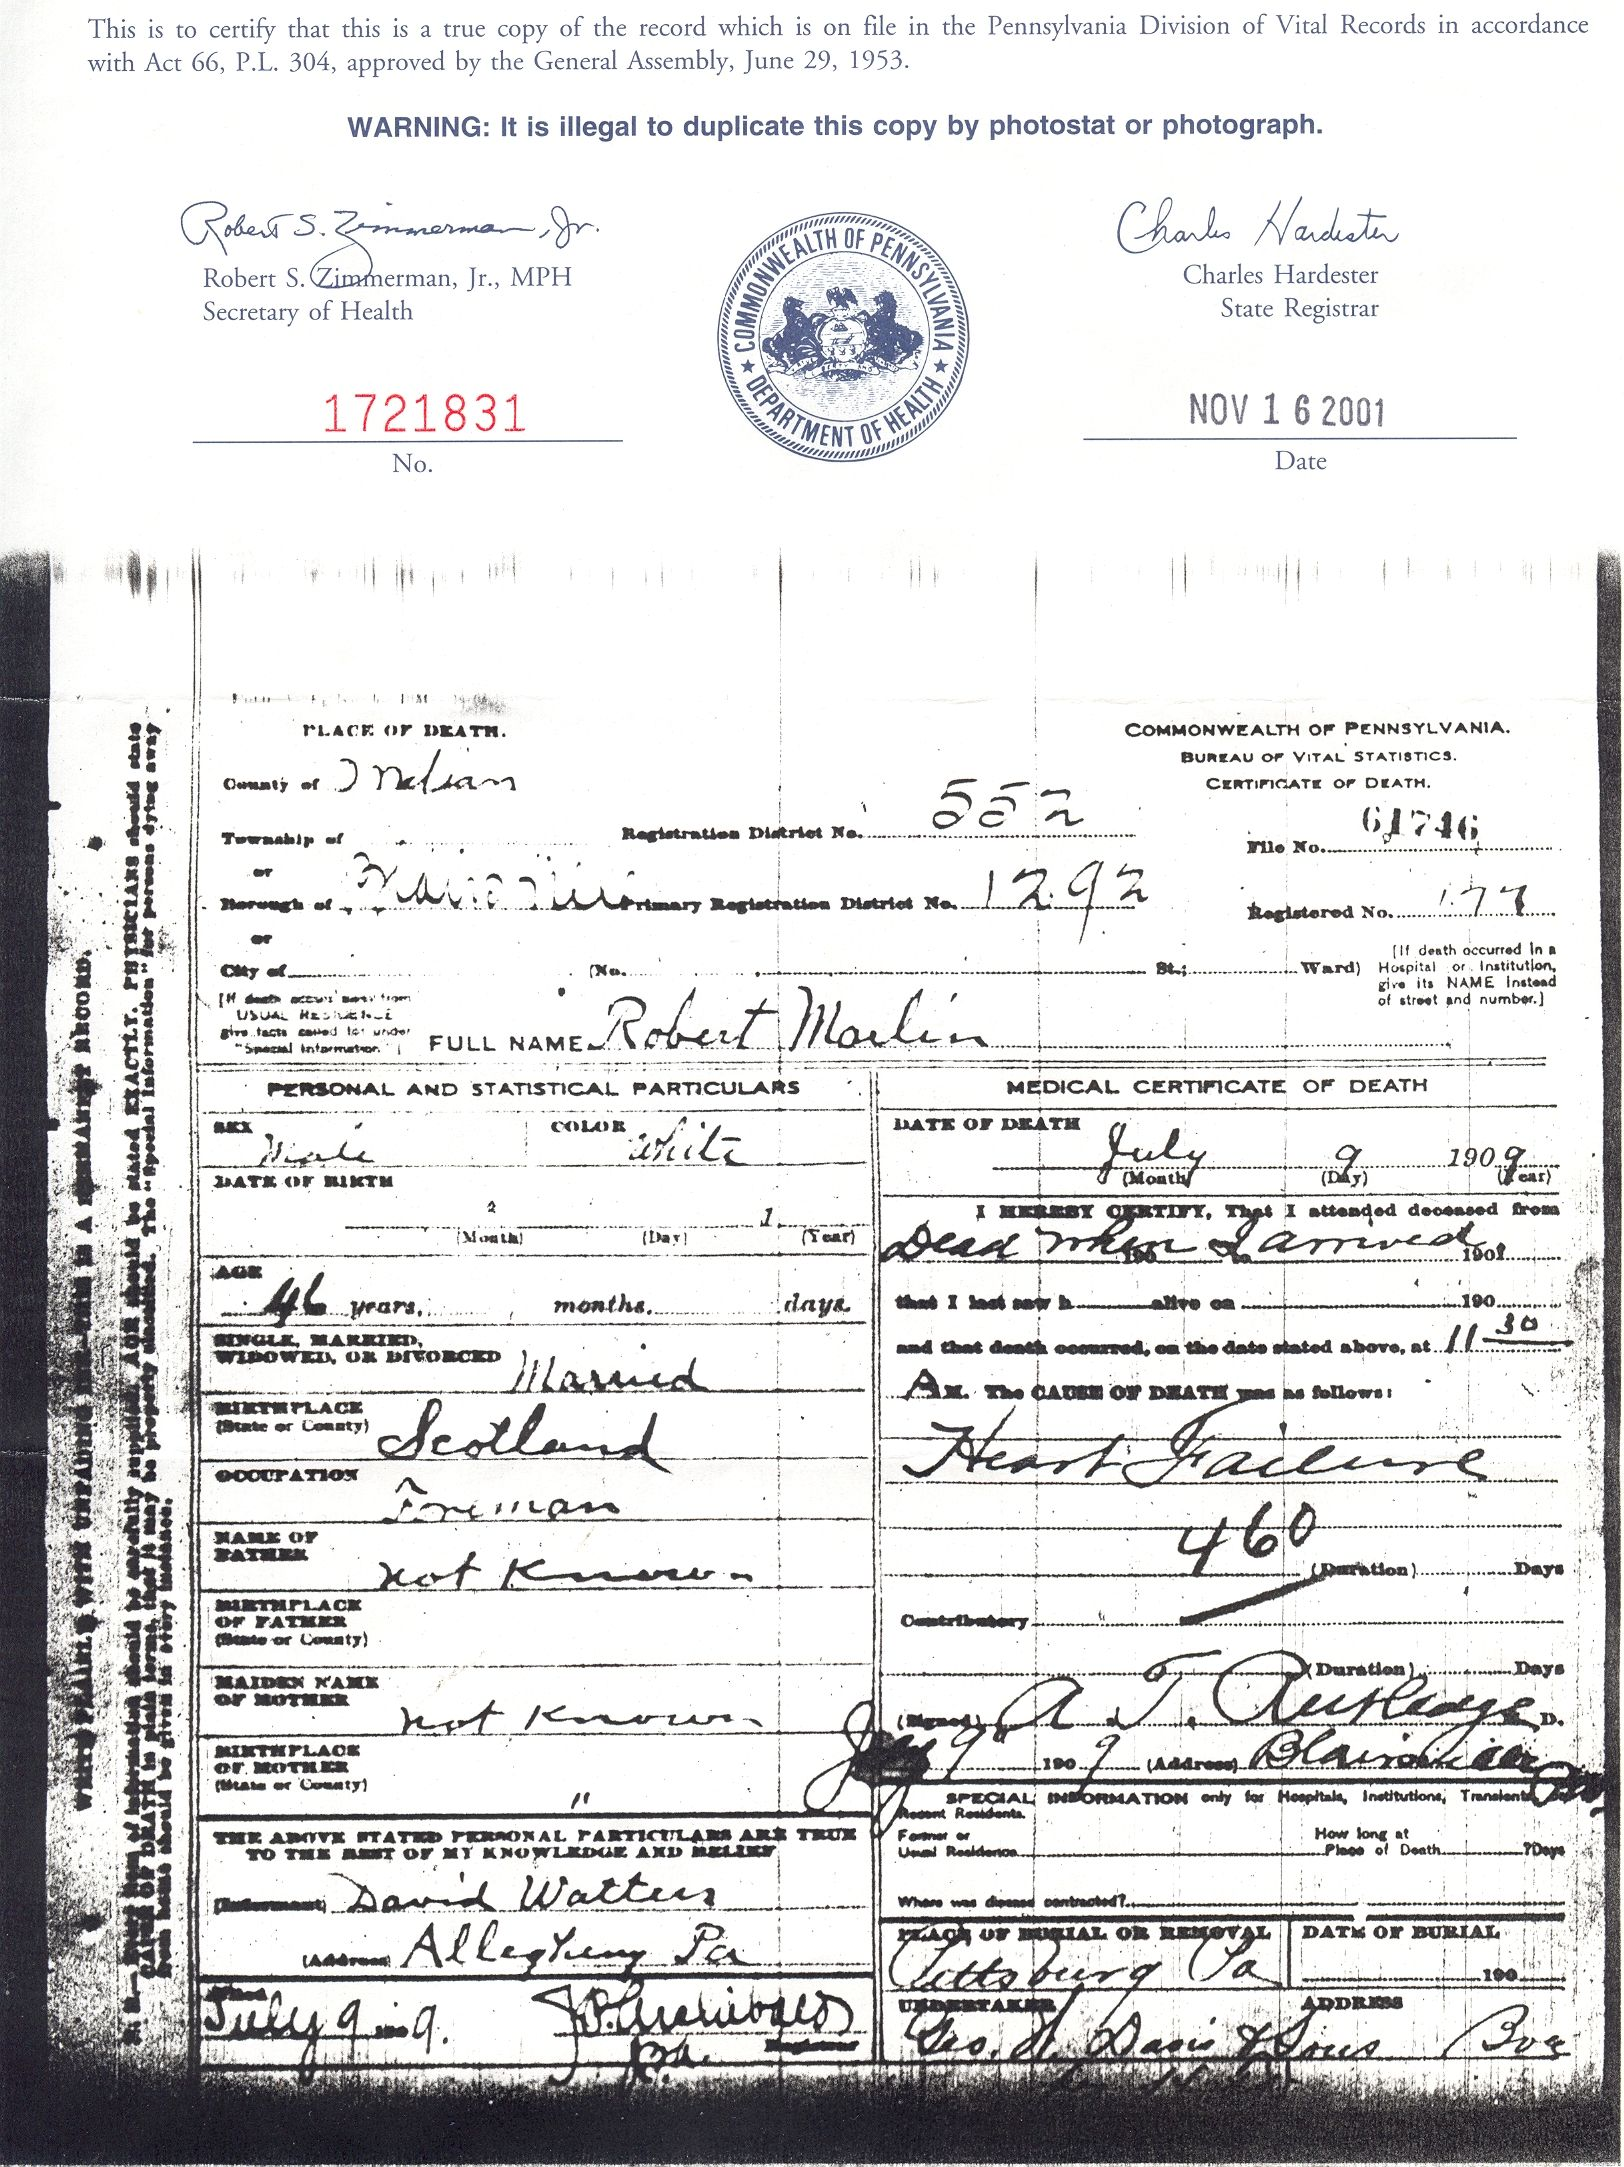 Robert marlin death certificate indian county pennsylvania 1909 robert marlin death certificate indian county pennsylvania 1909 1betcityfo Choice Image